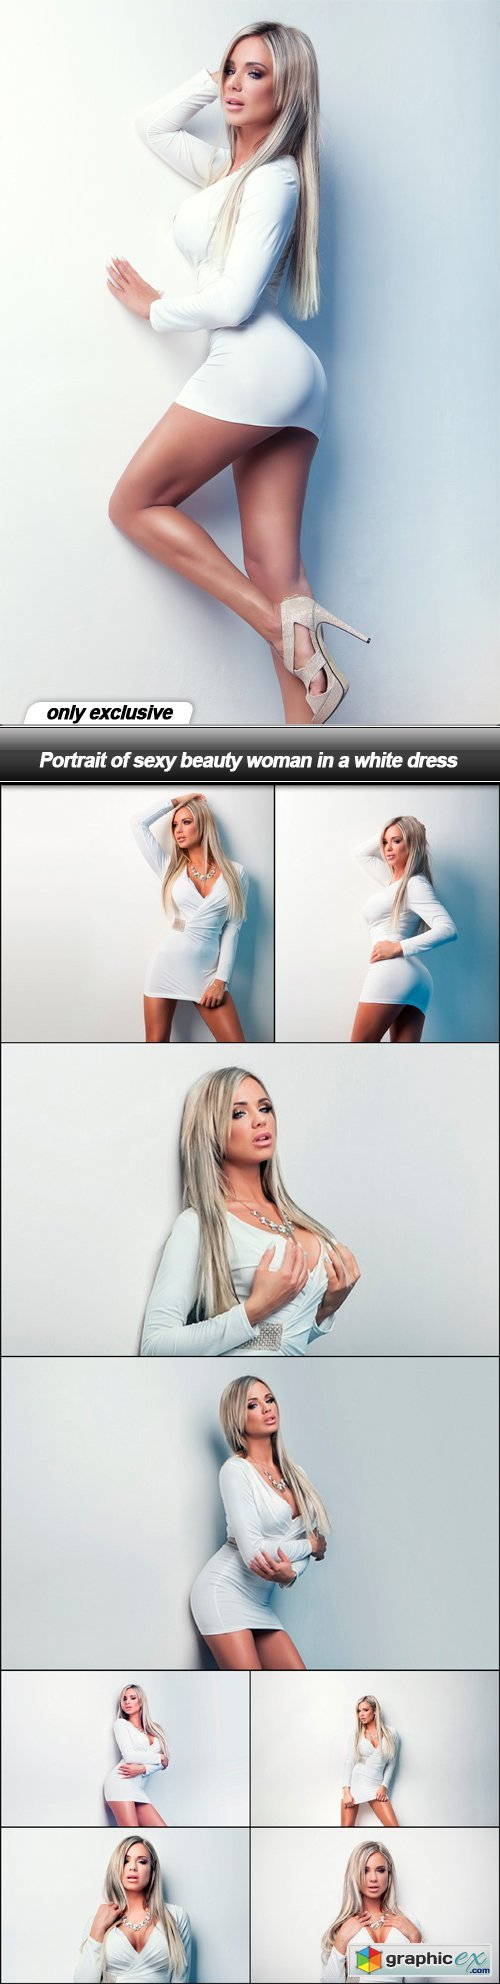 Portrait of sexy beauty woman in a white dress - 9 UHQ JPEG